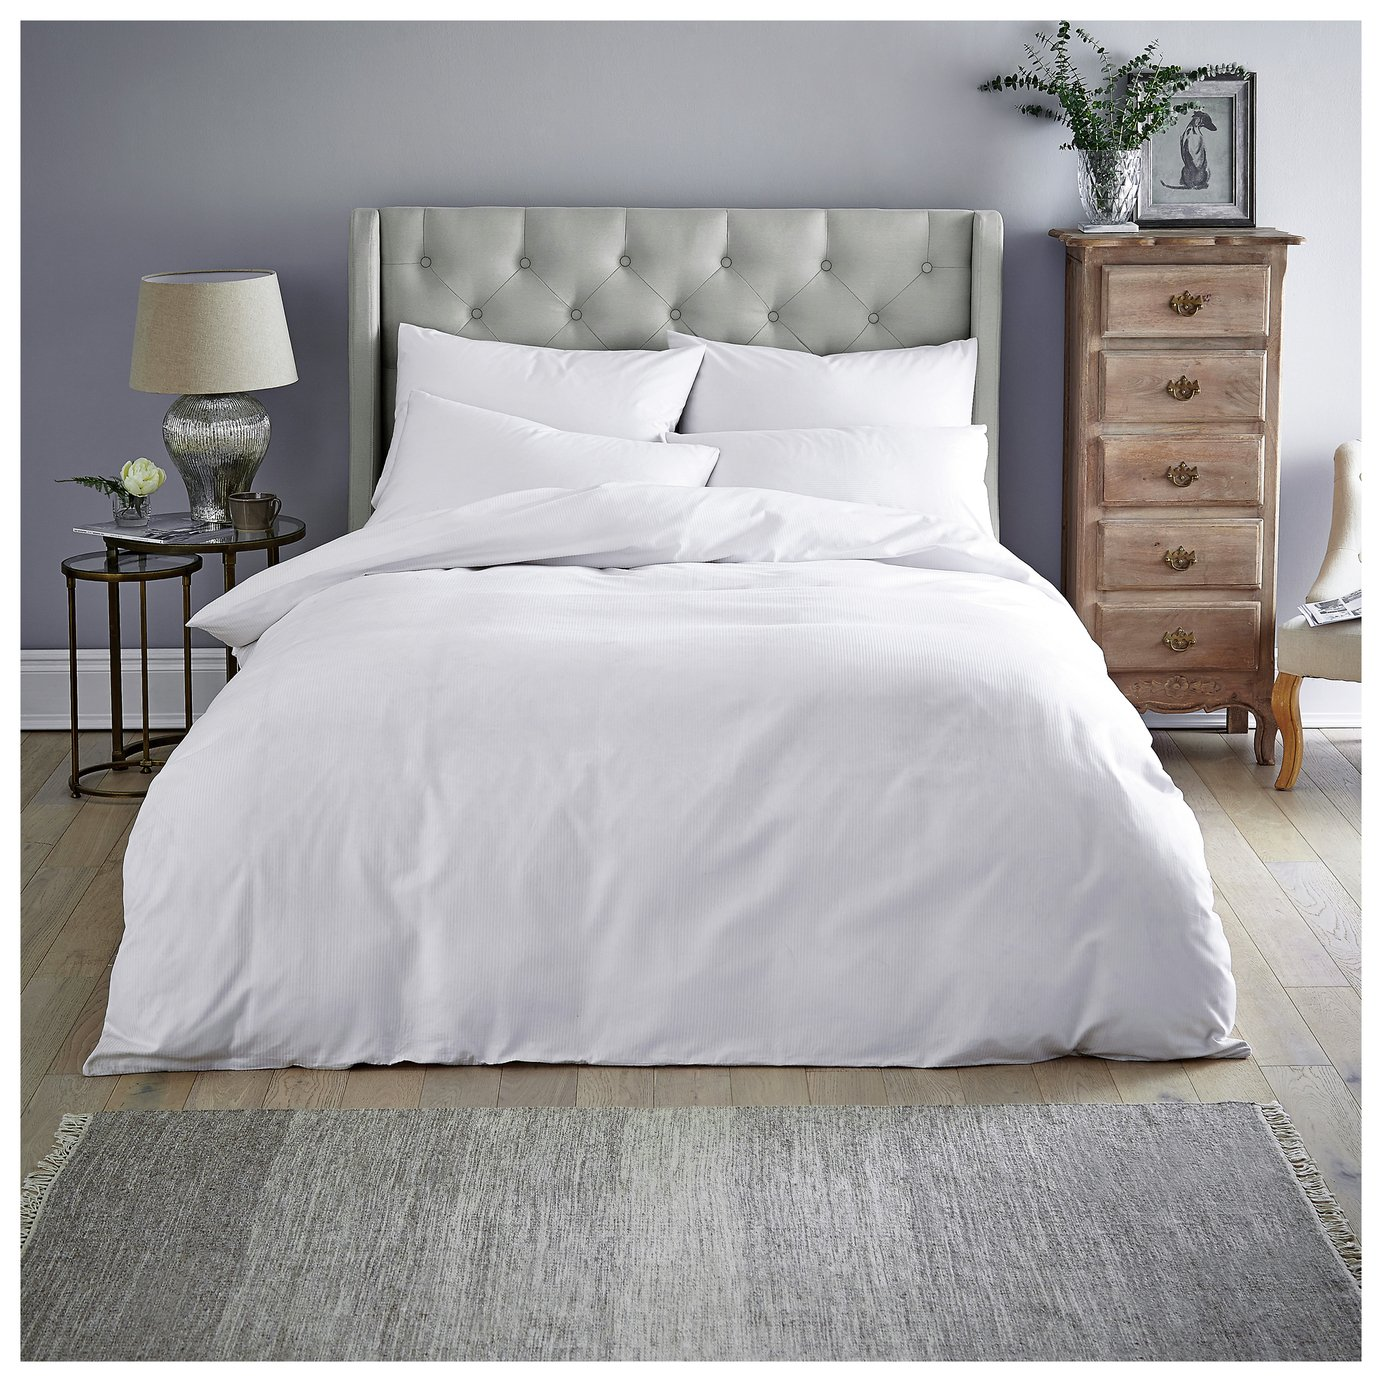 Sainsbury's Home White Sateen Stripe Bedding Set - Double